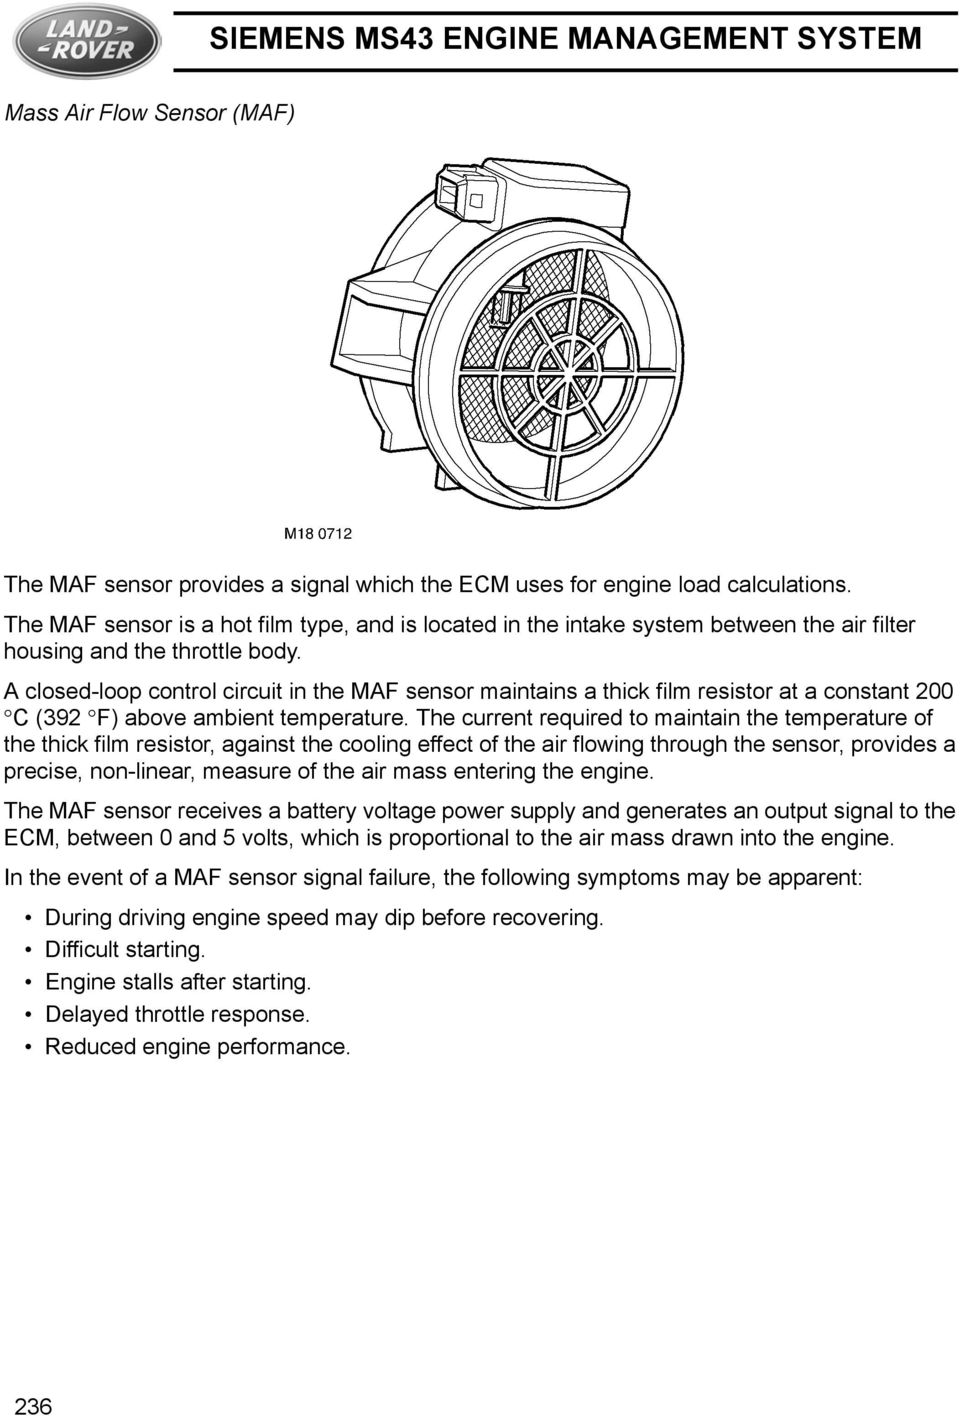 Siemens Ms43 Engine Management System Pdf Rover Cooling Diagram A Closed Loop Control Circuit In The Maf Sensor Maintains Thick Film Resistor At